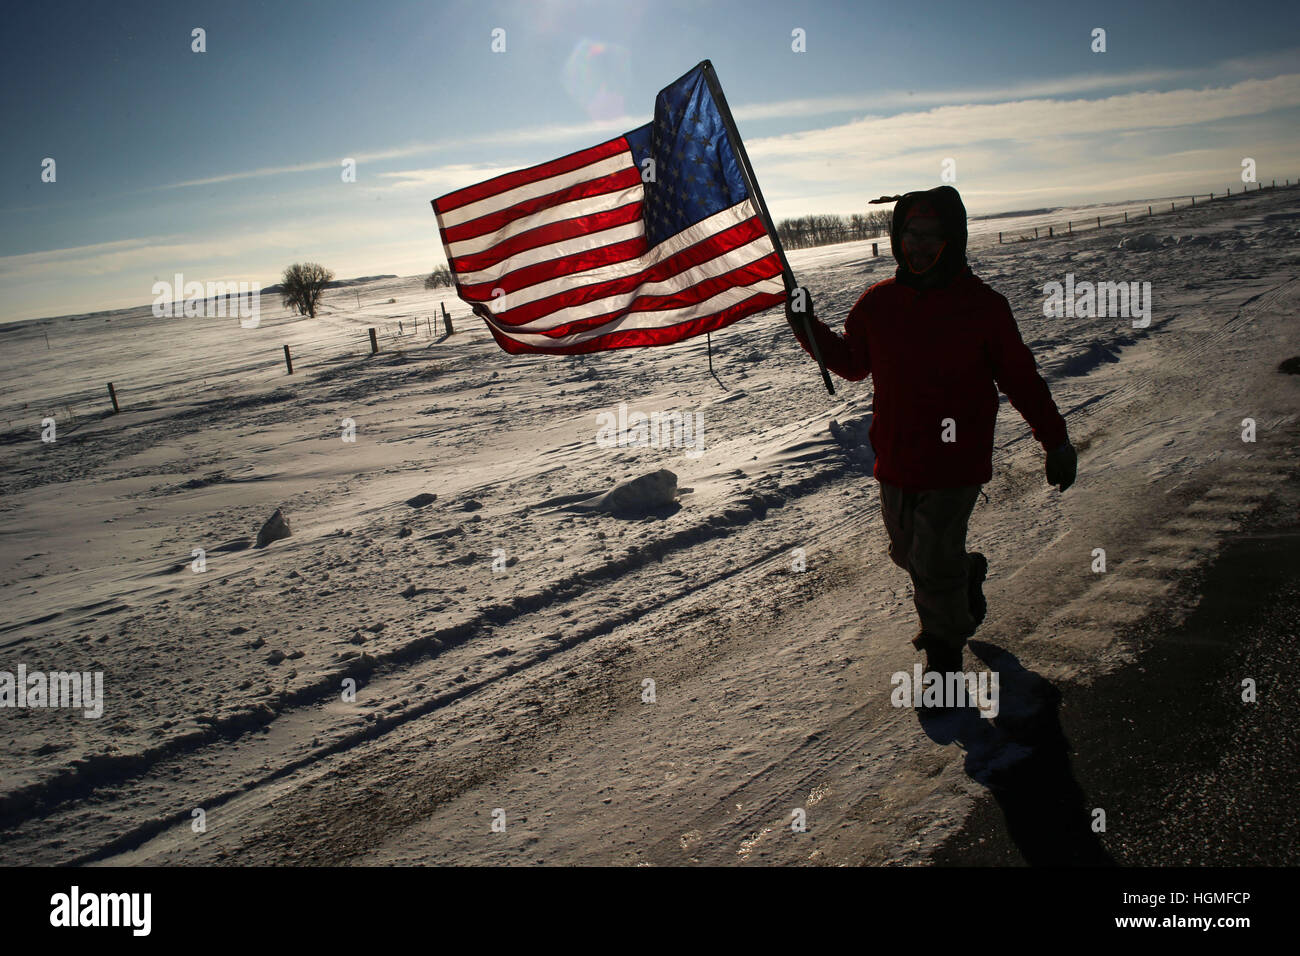 Solen, North Dakota, USA. 10th Jan, 2017. RICKY MCKENZIE SR. of the Woodland Cree First Nation walks along Highway - Stock Image